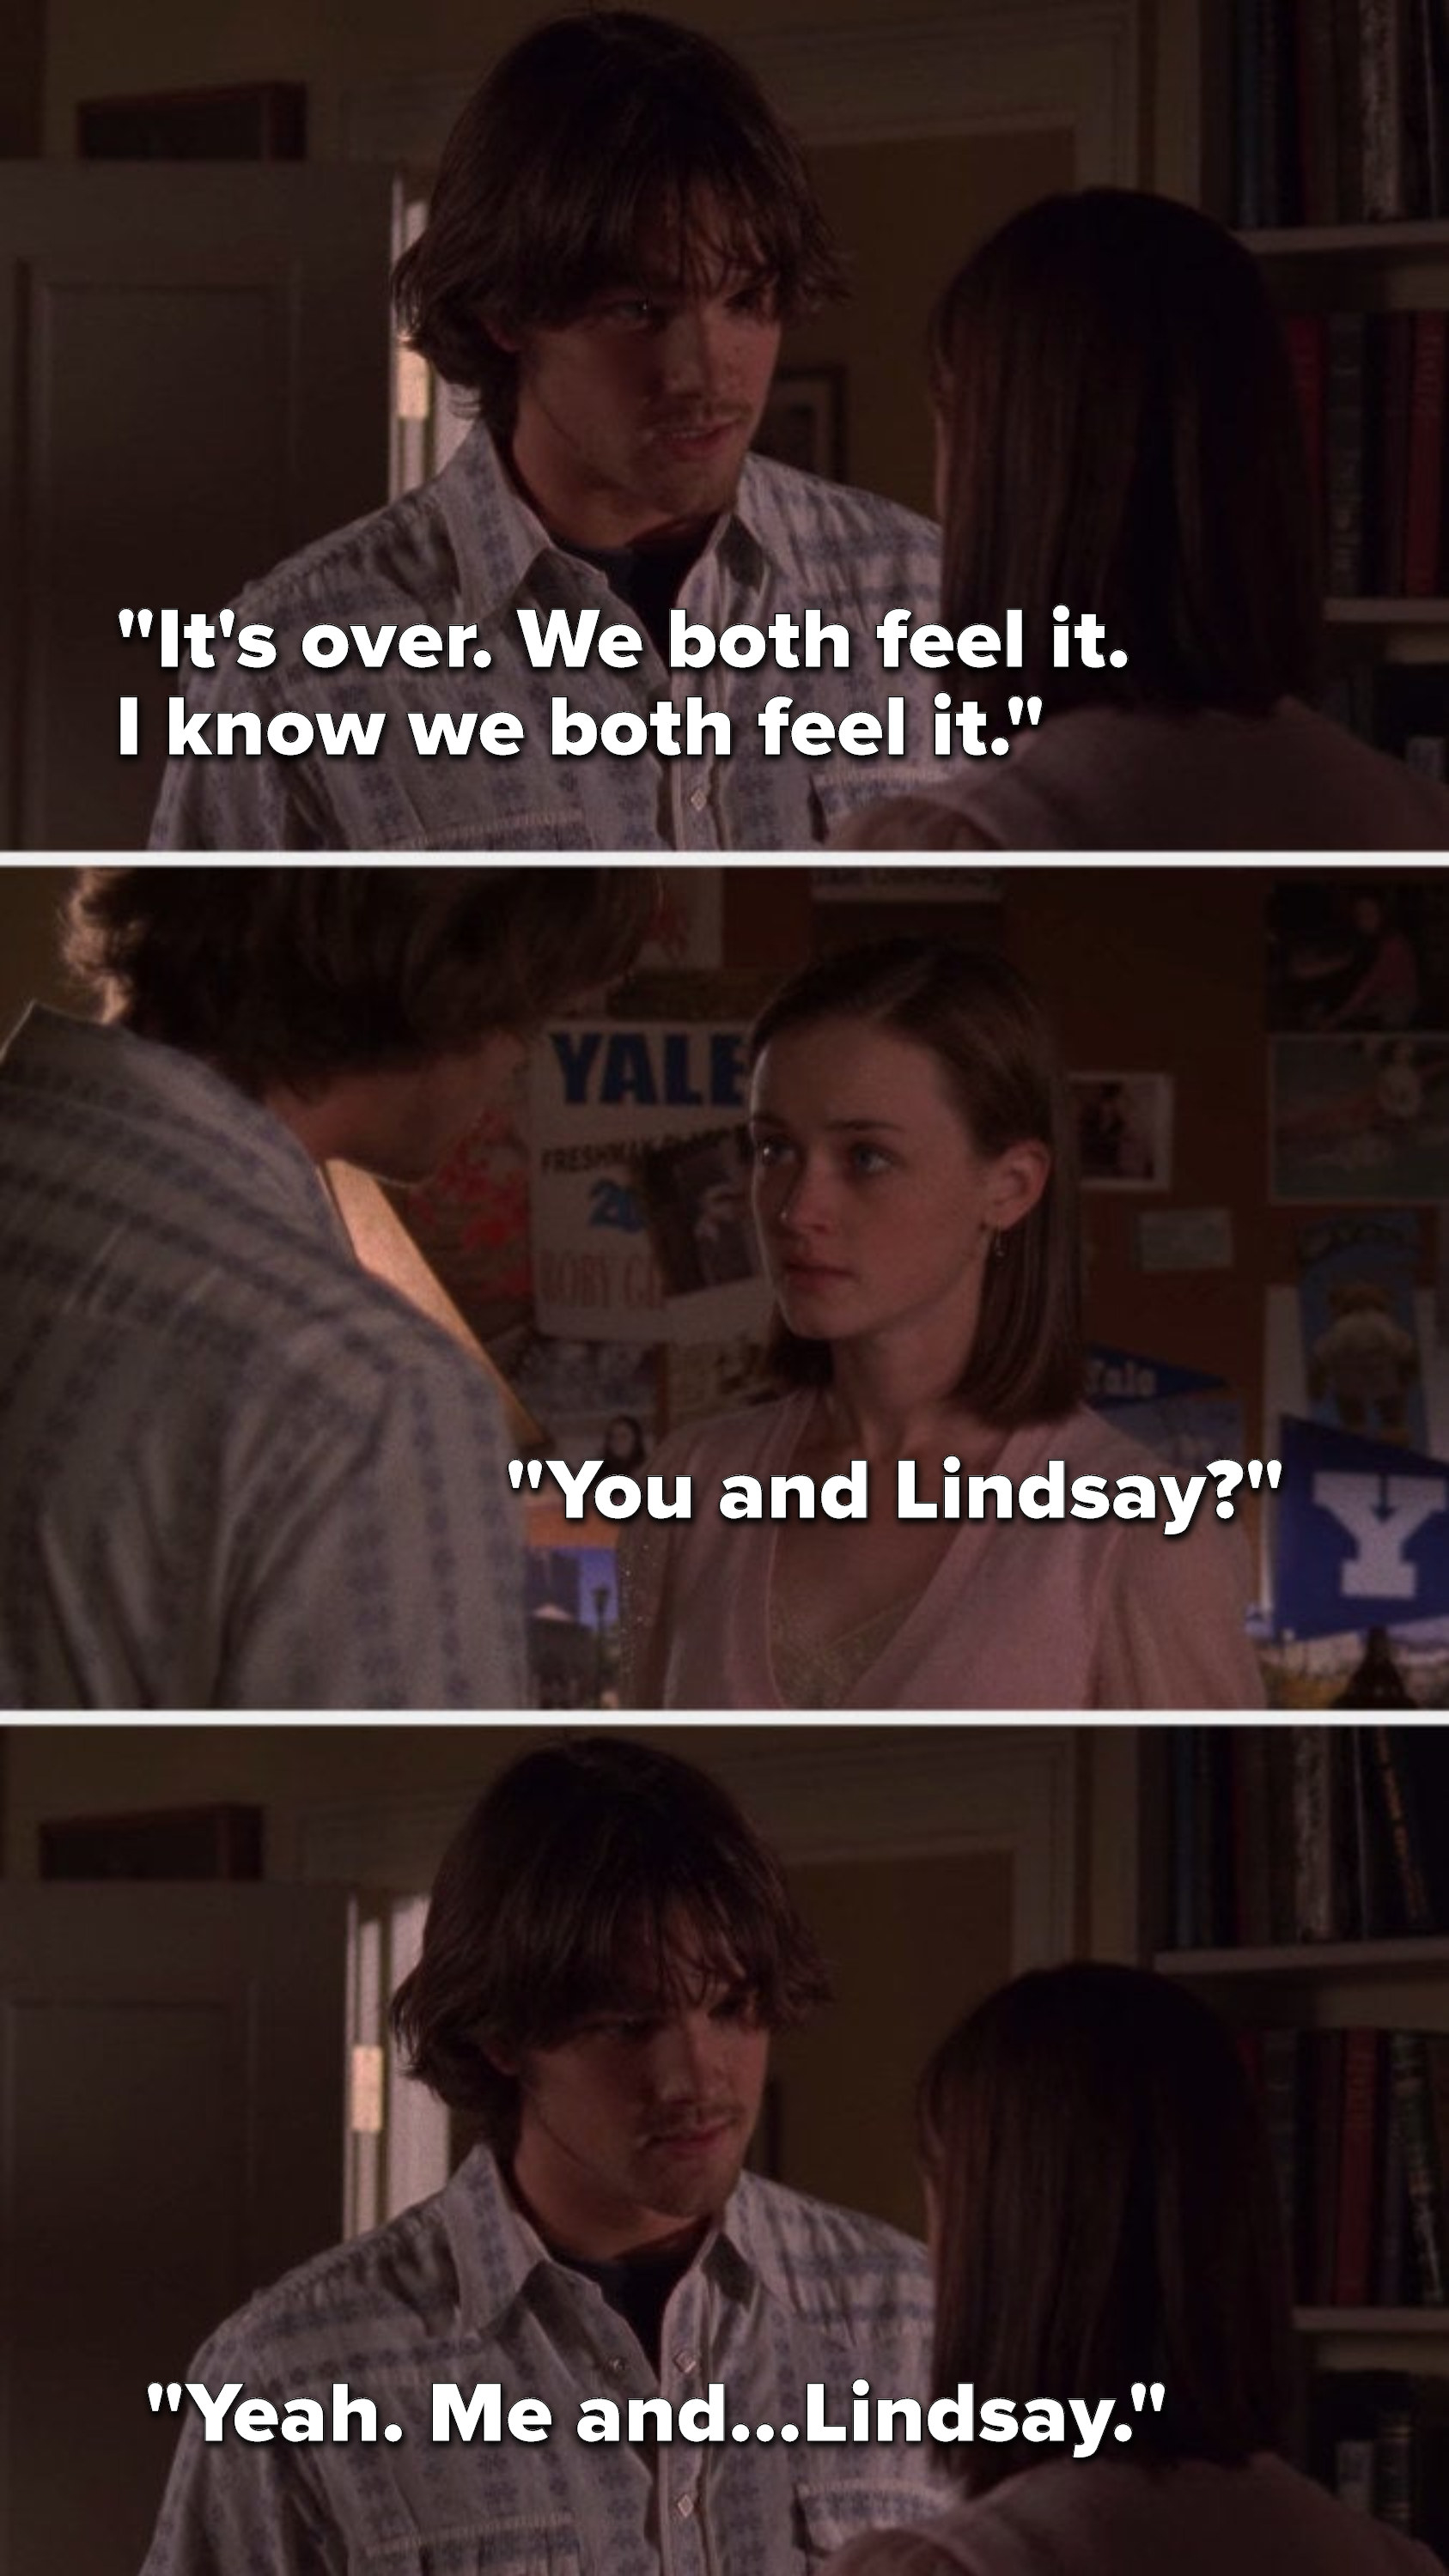 """Dean says, """"It's over, we both feel it, I know we both feel it,"""" Rory says, """"You and Lindsay,"""" and Dean says, """"Yeah, me and Lindsay"""""""